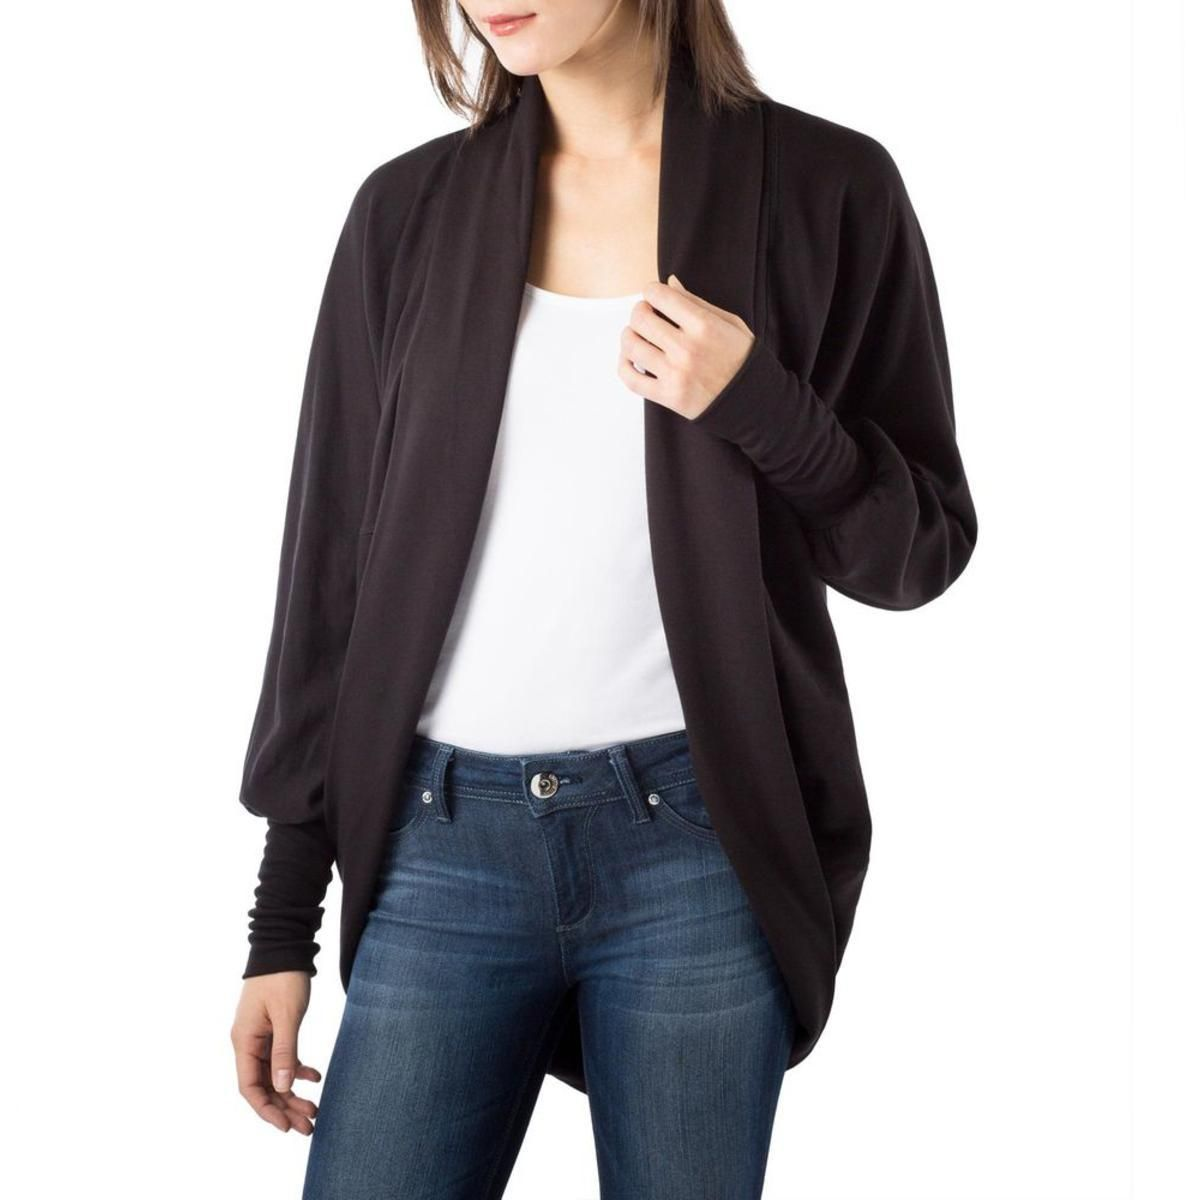 Womens Fleece Lined Open Front Cardigan Sweater | Products